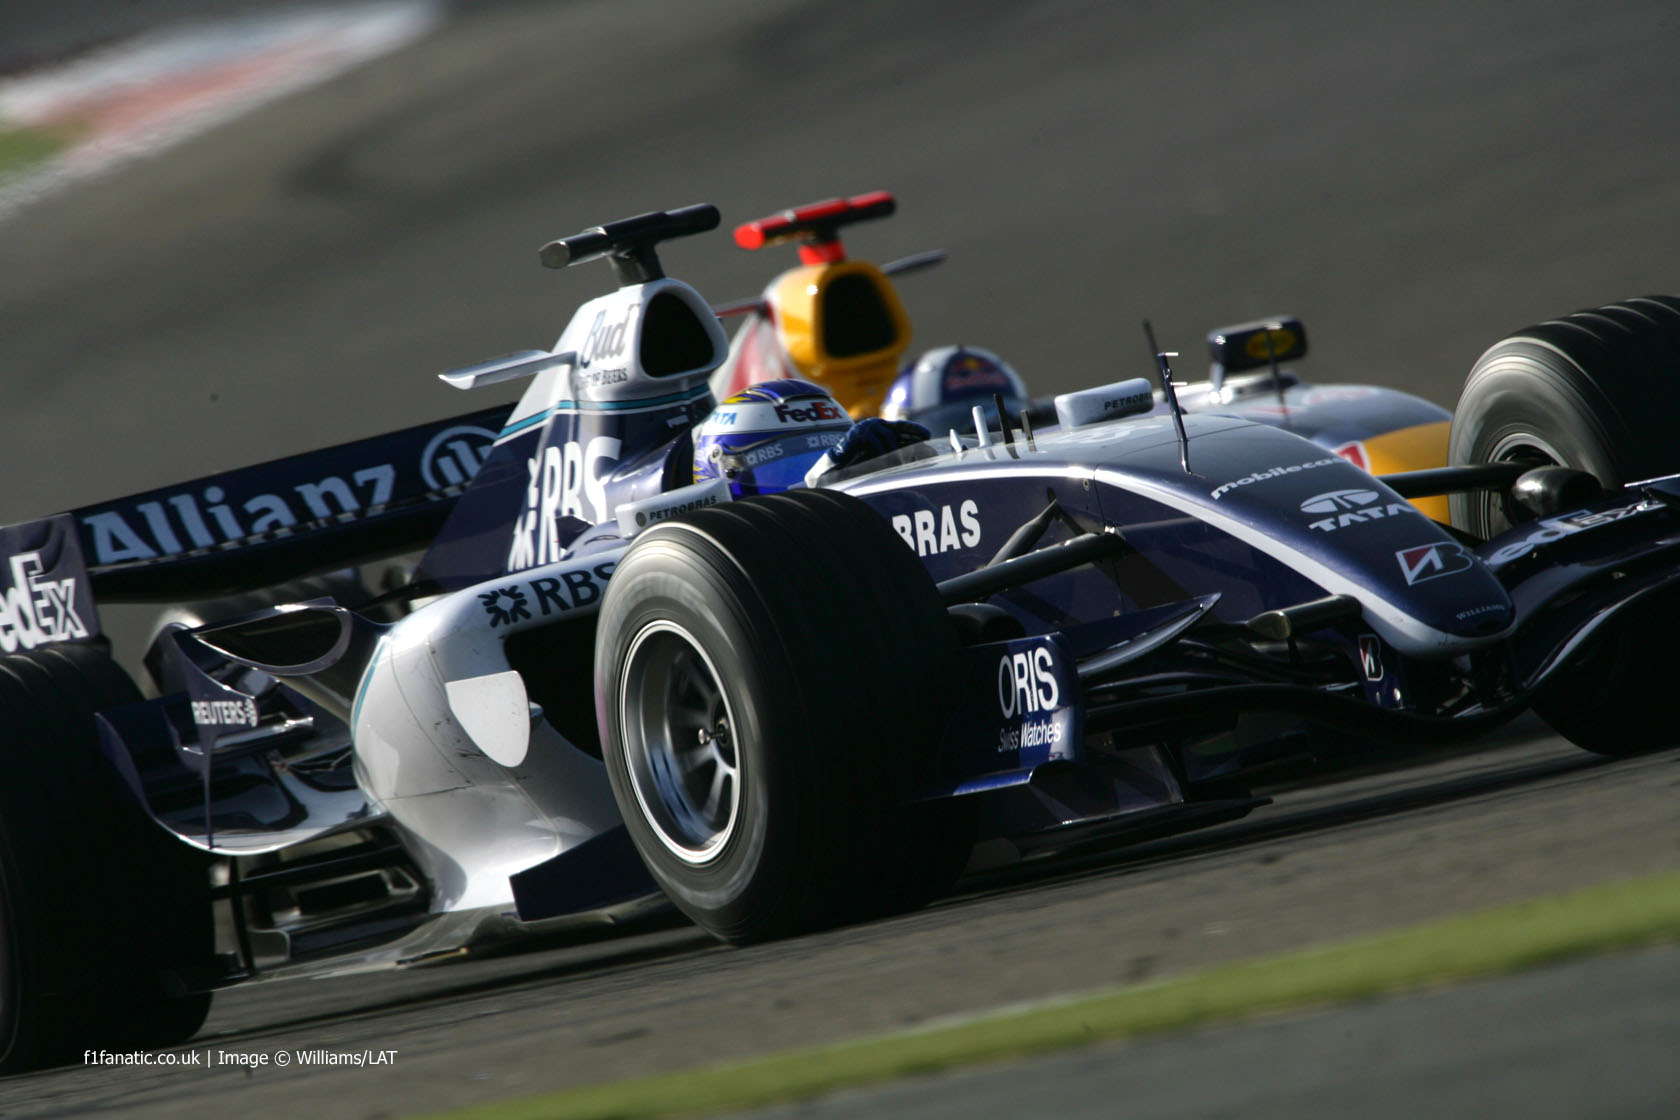 Nico Rosberg, Williams, Bahrain, 2006